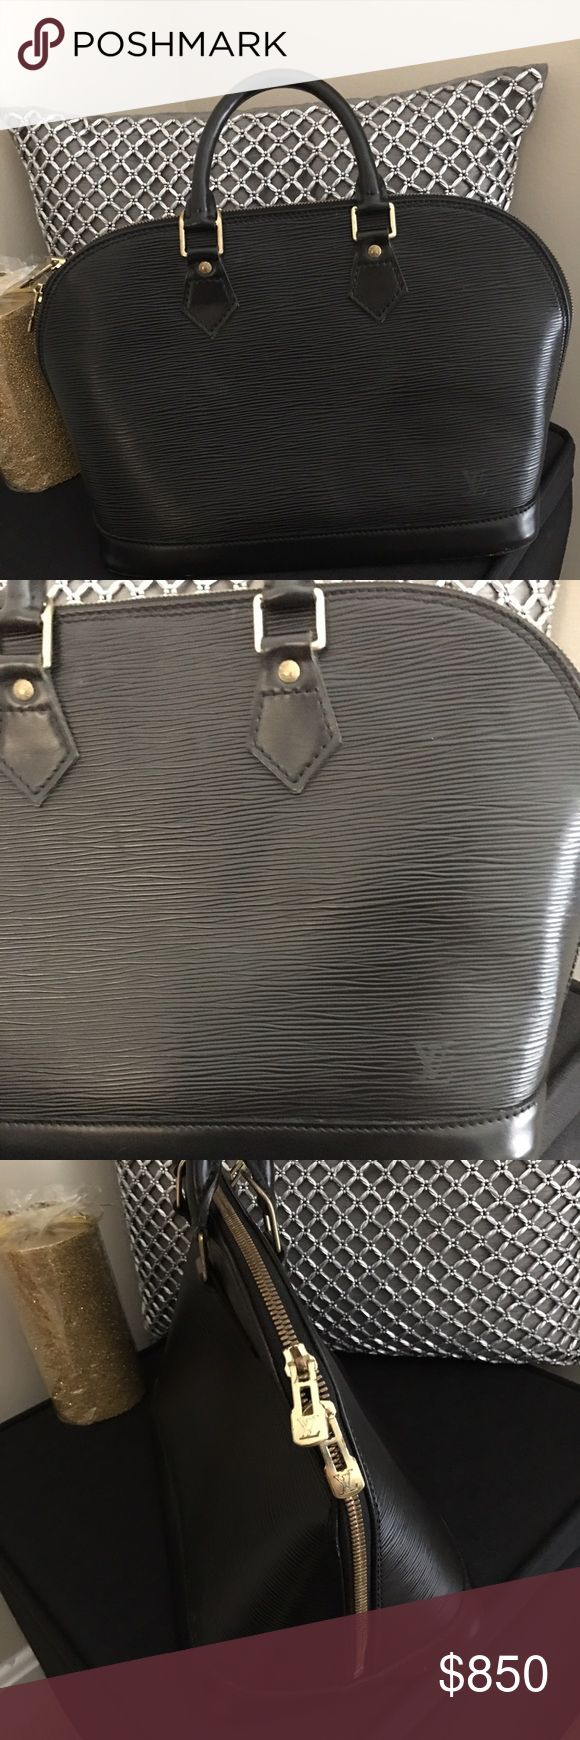 Authentic Louis Vuitton Alma Black Medium size. A little too small for all of my stuff!! Louis Vuitton Bags Totes